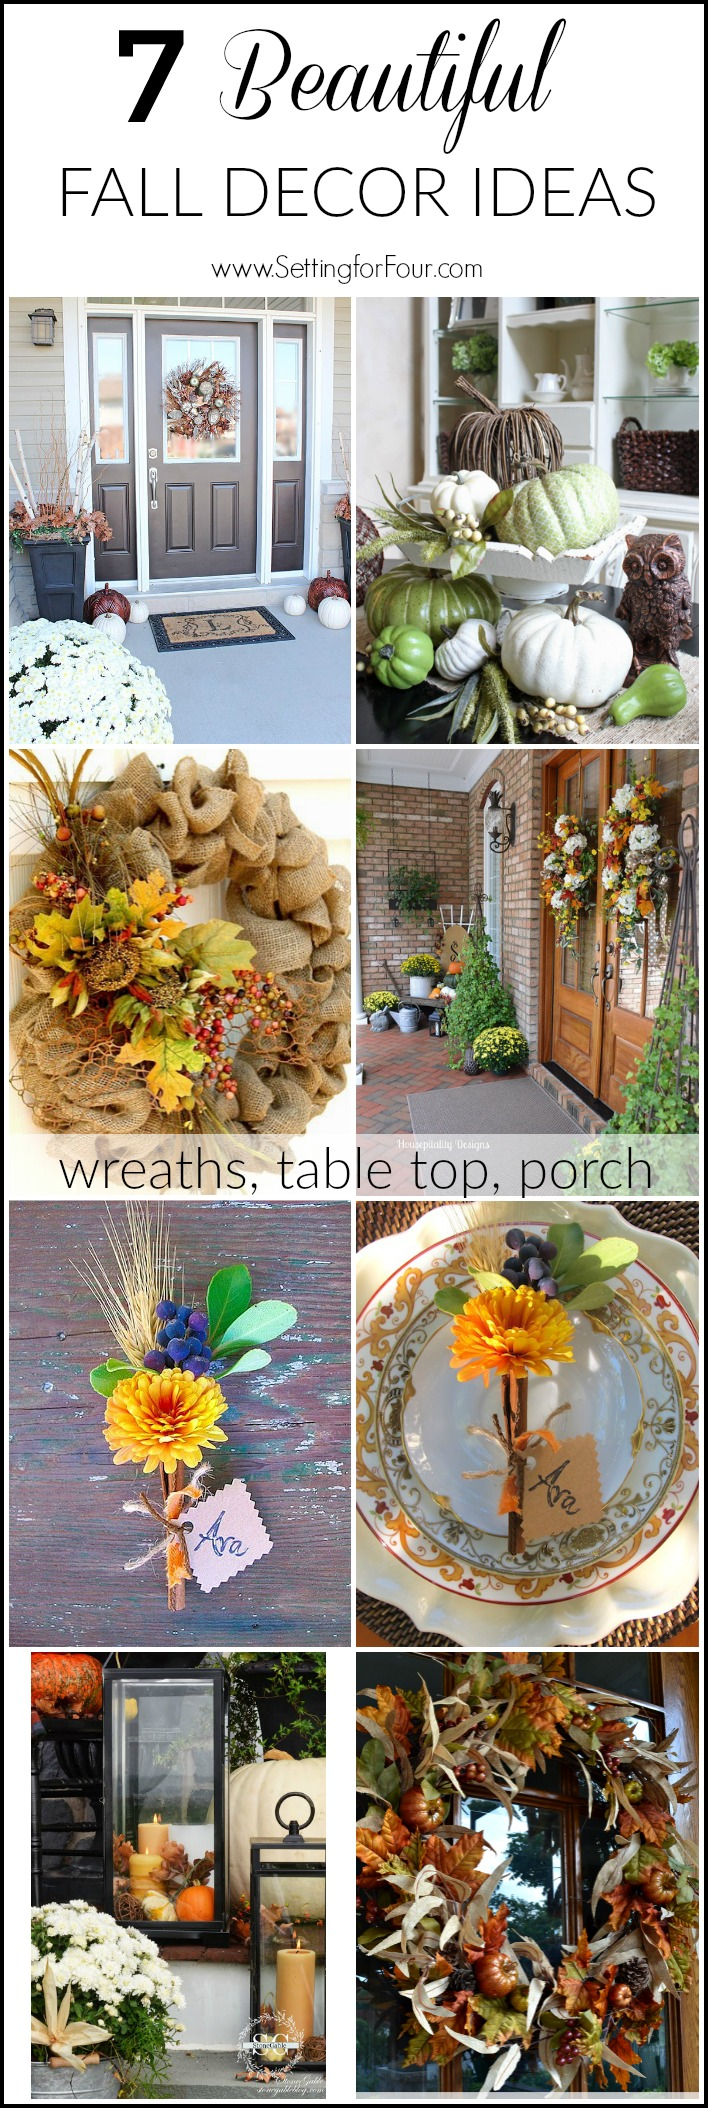 Bring the rich colors and textures of Fall into your home with these seven GORGEOUS early Fall Decorating Ideas! Includes Autumn DIY projects and decor ideas for your porch, table top and wreath projects too!